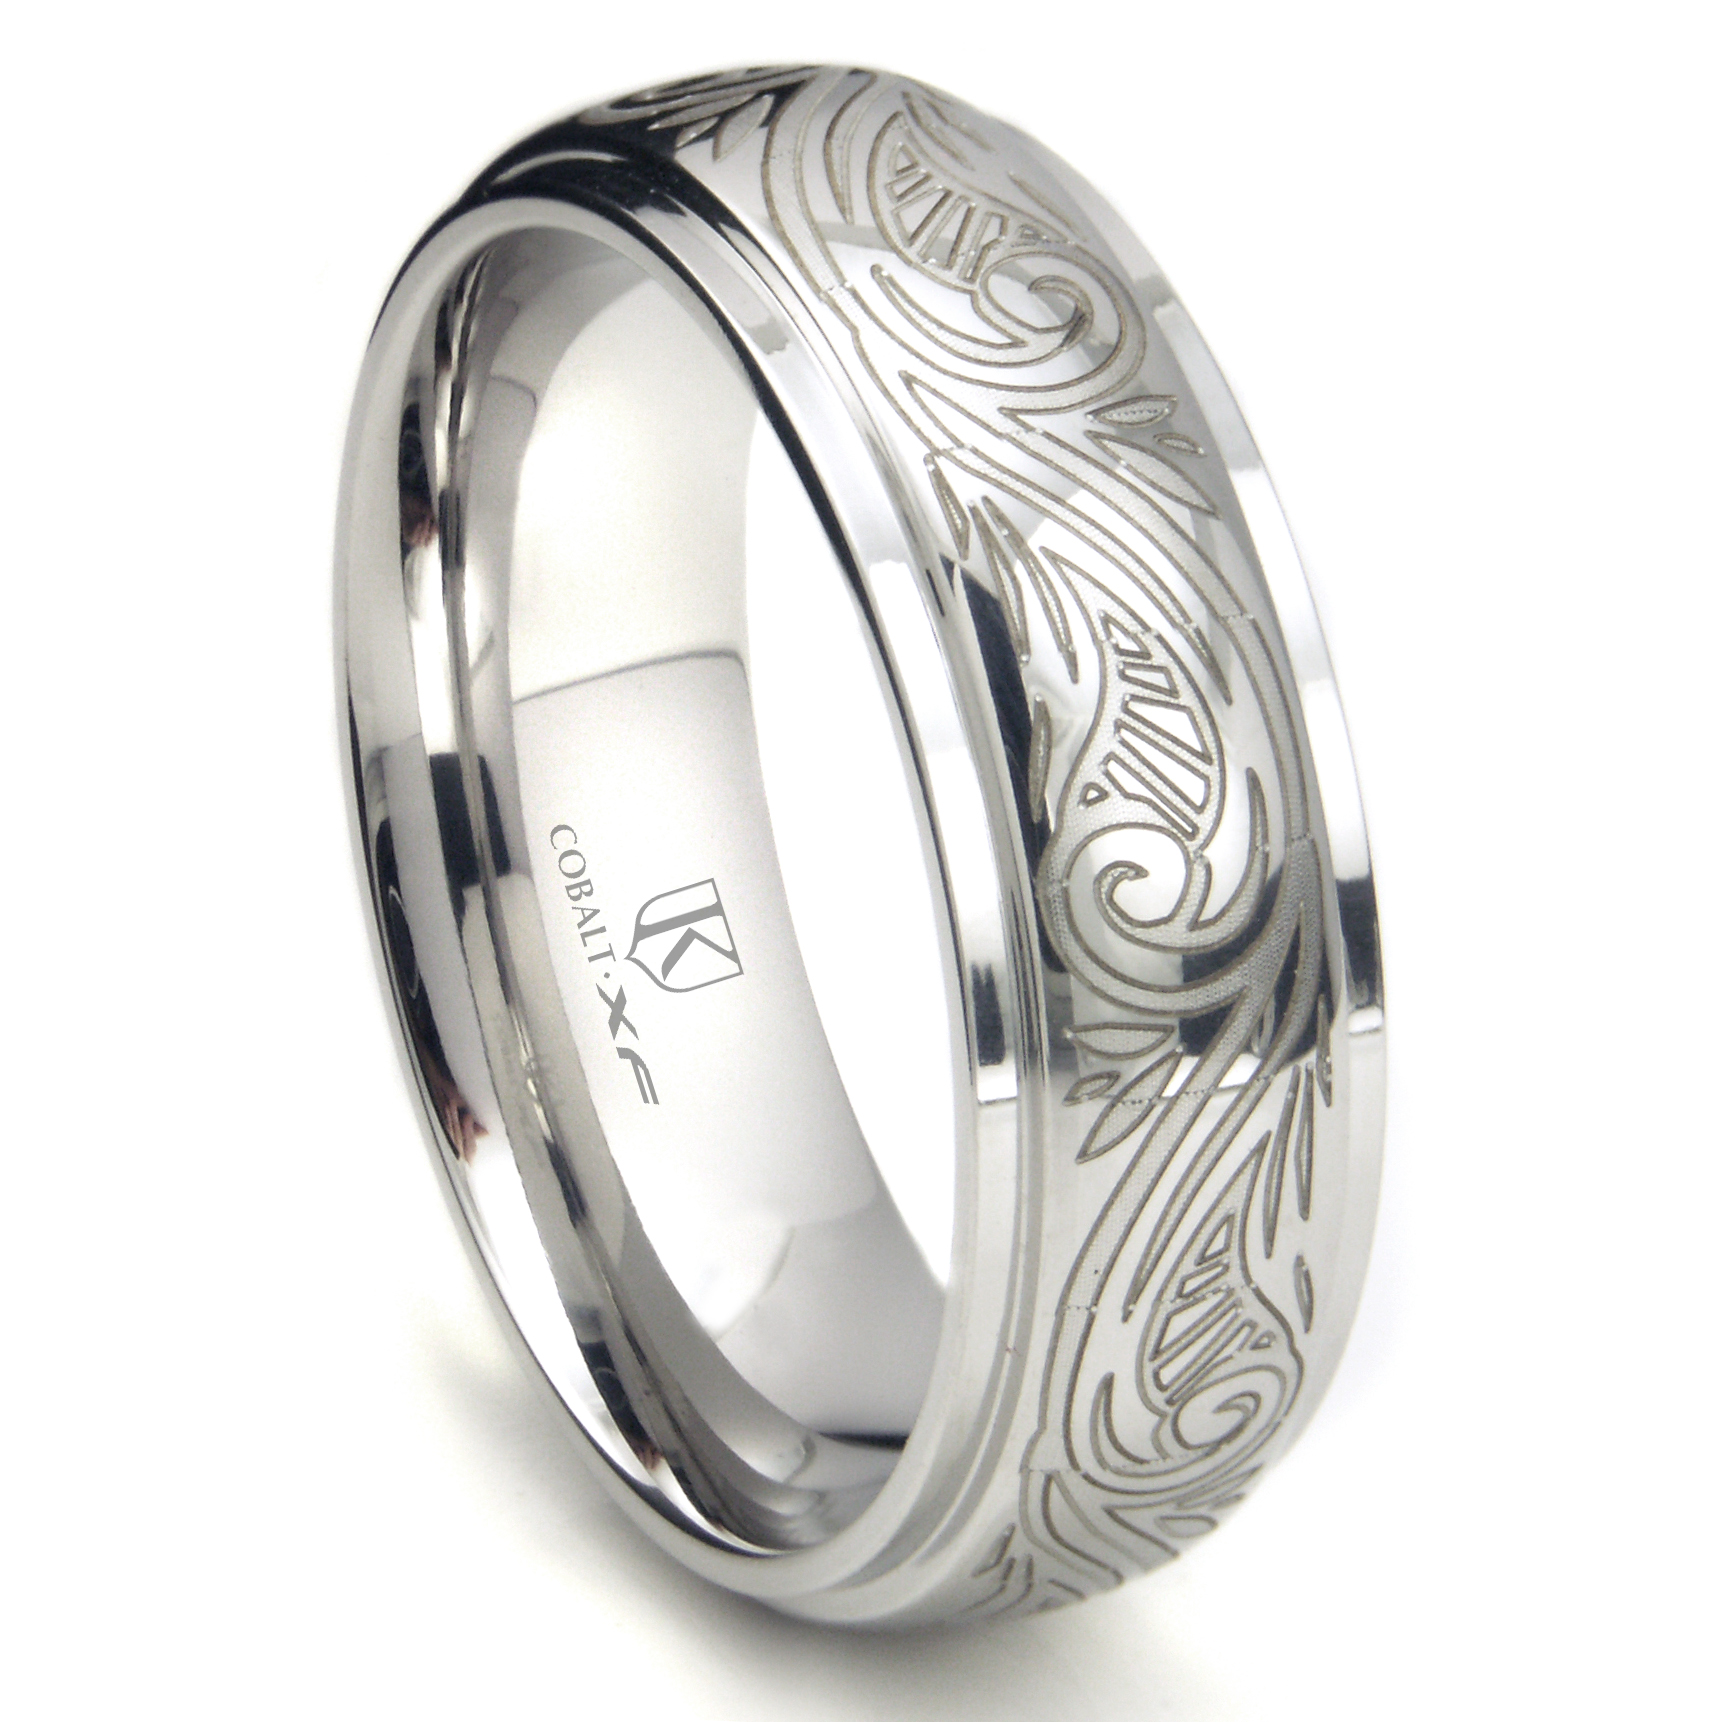 chrome paisley cobalt ring band wedding rings xf laser motif loading zoom engraved home dome